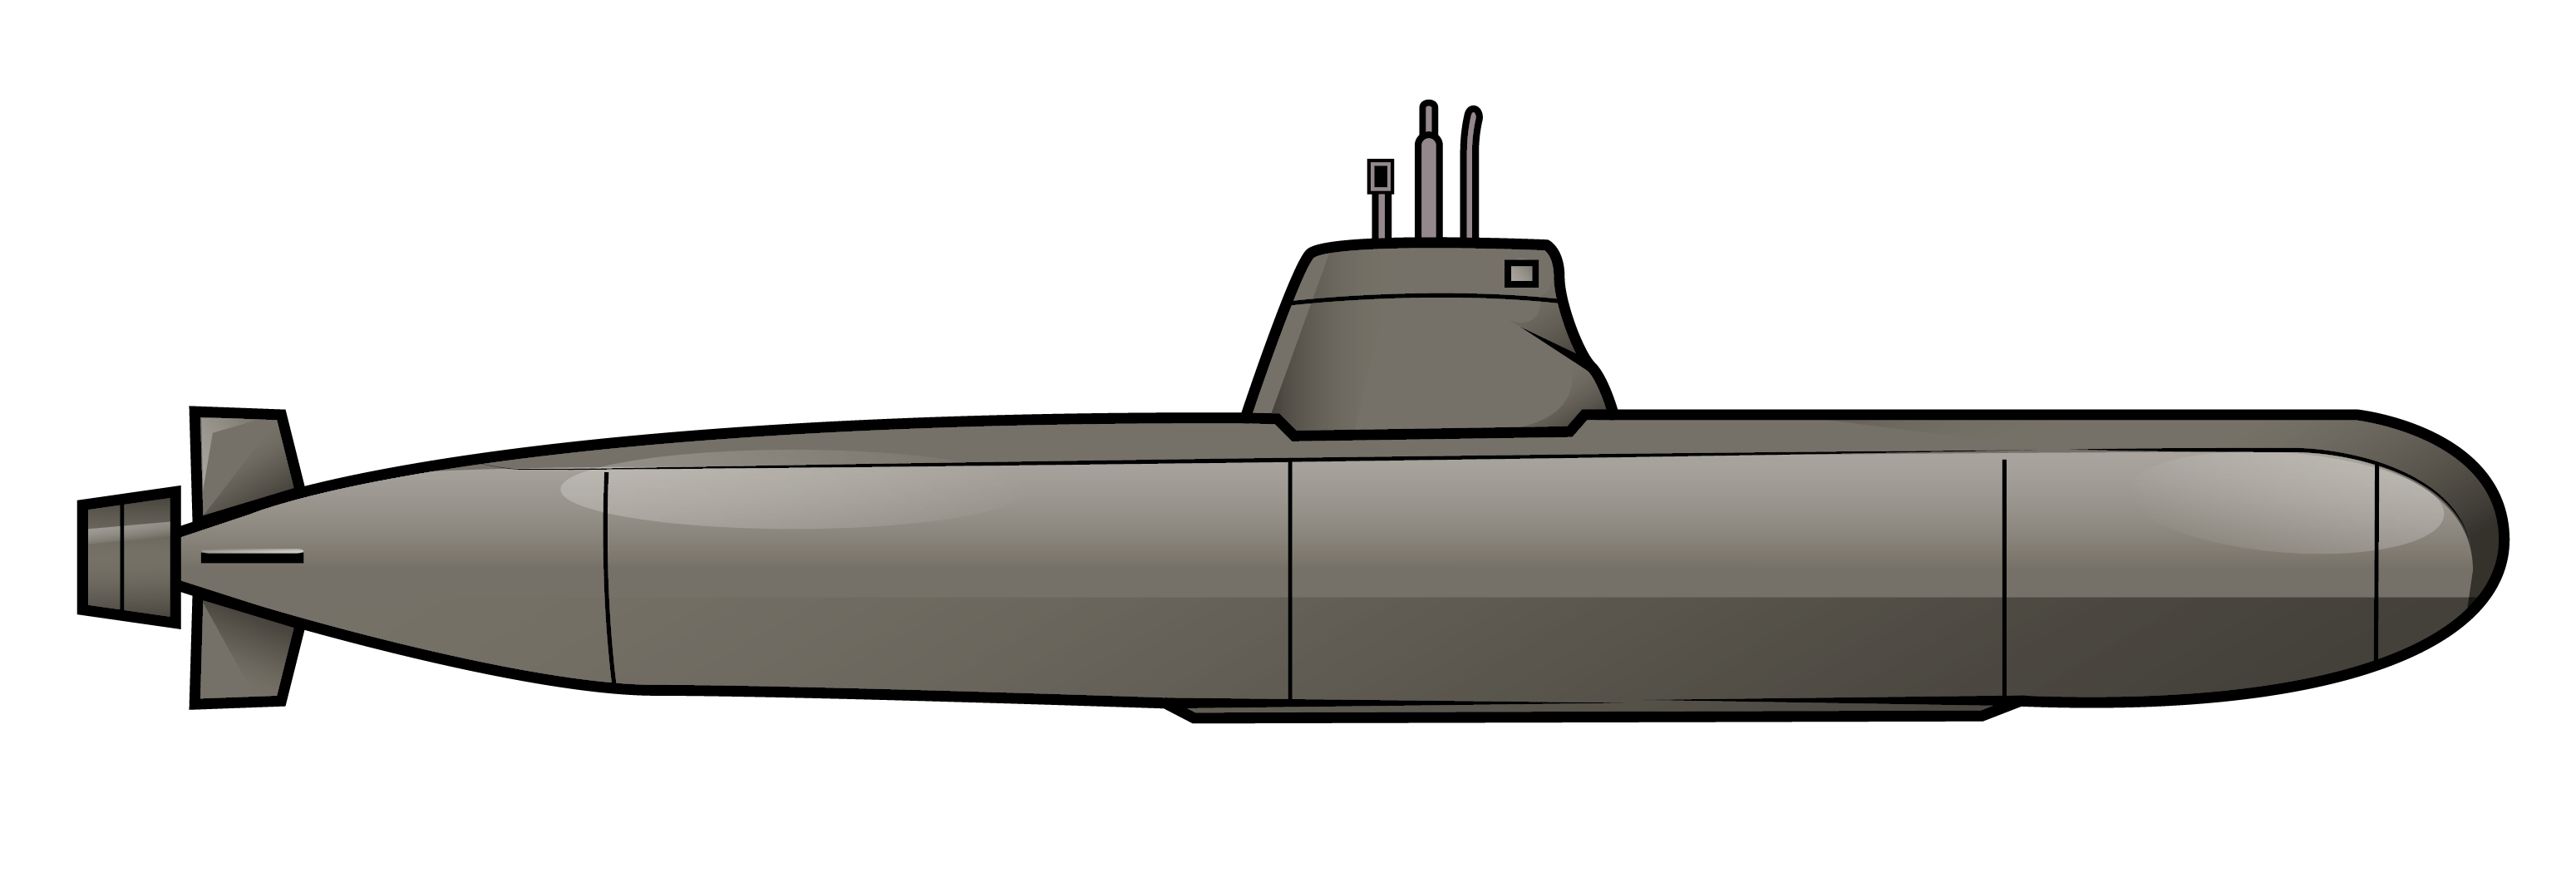 collection of submarine. Navy clipart wheel